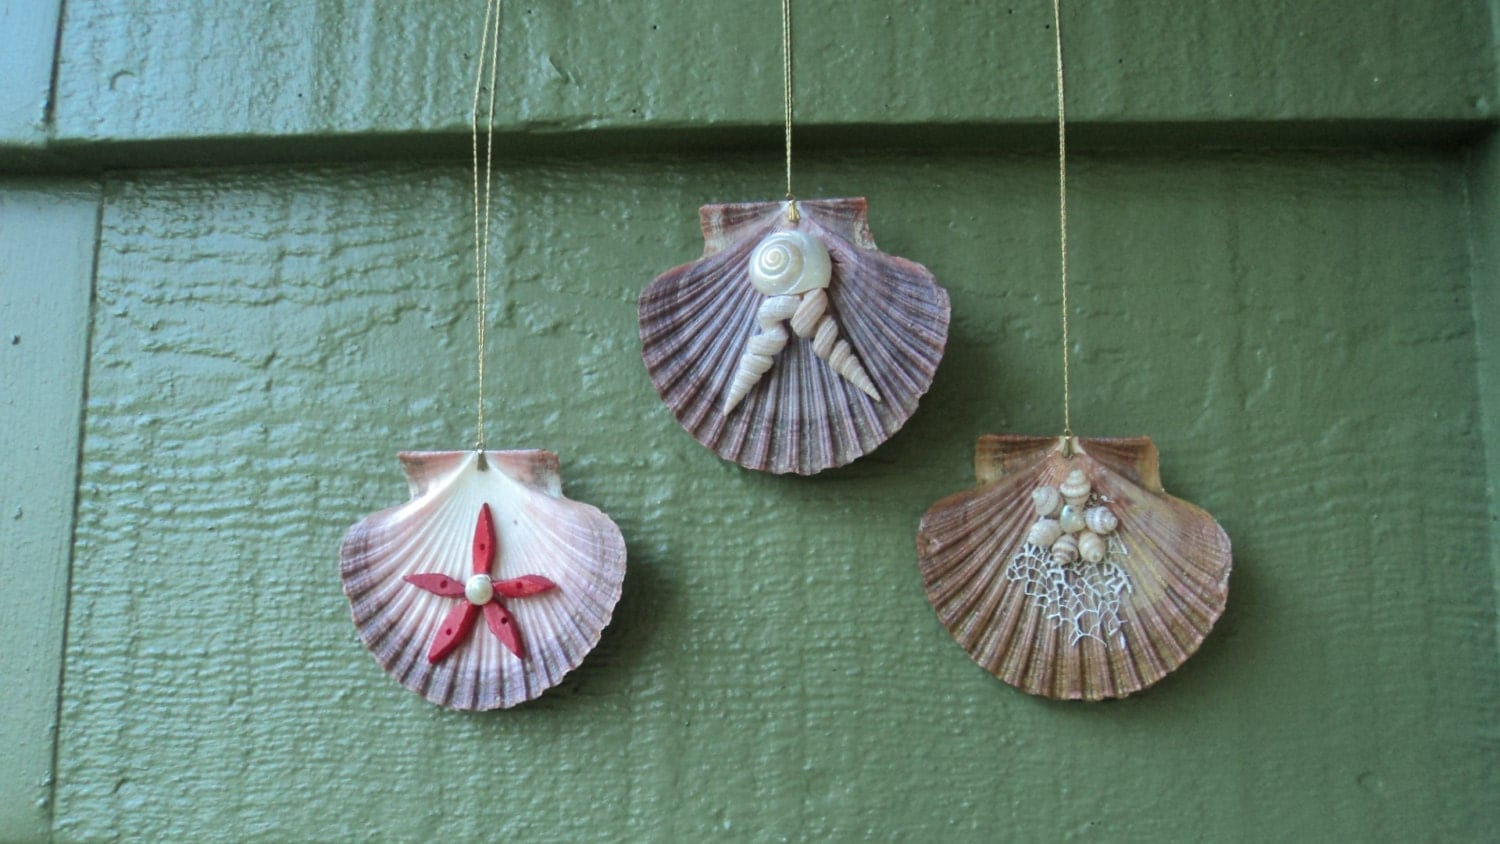 Lot of 3 Seashell Flower Embellished Mexican Flat Scallop Shell Christmas Ornaments